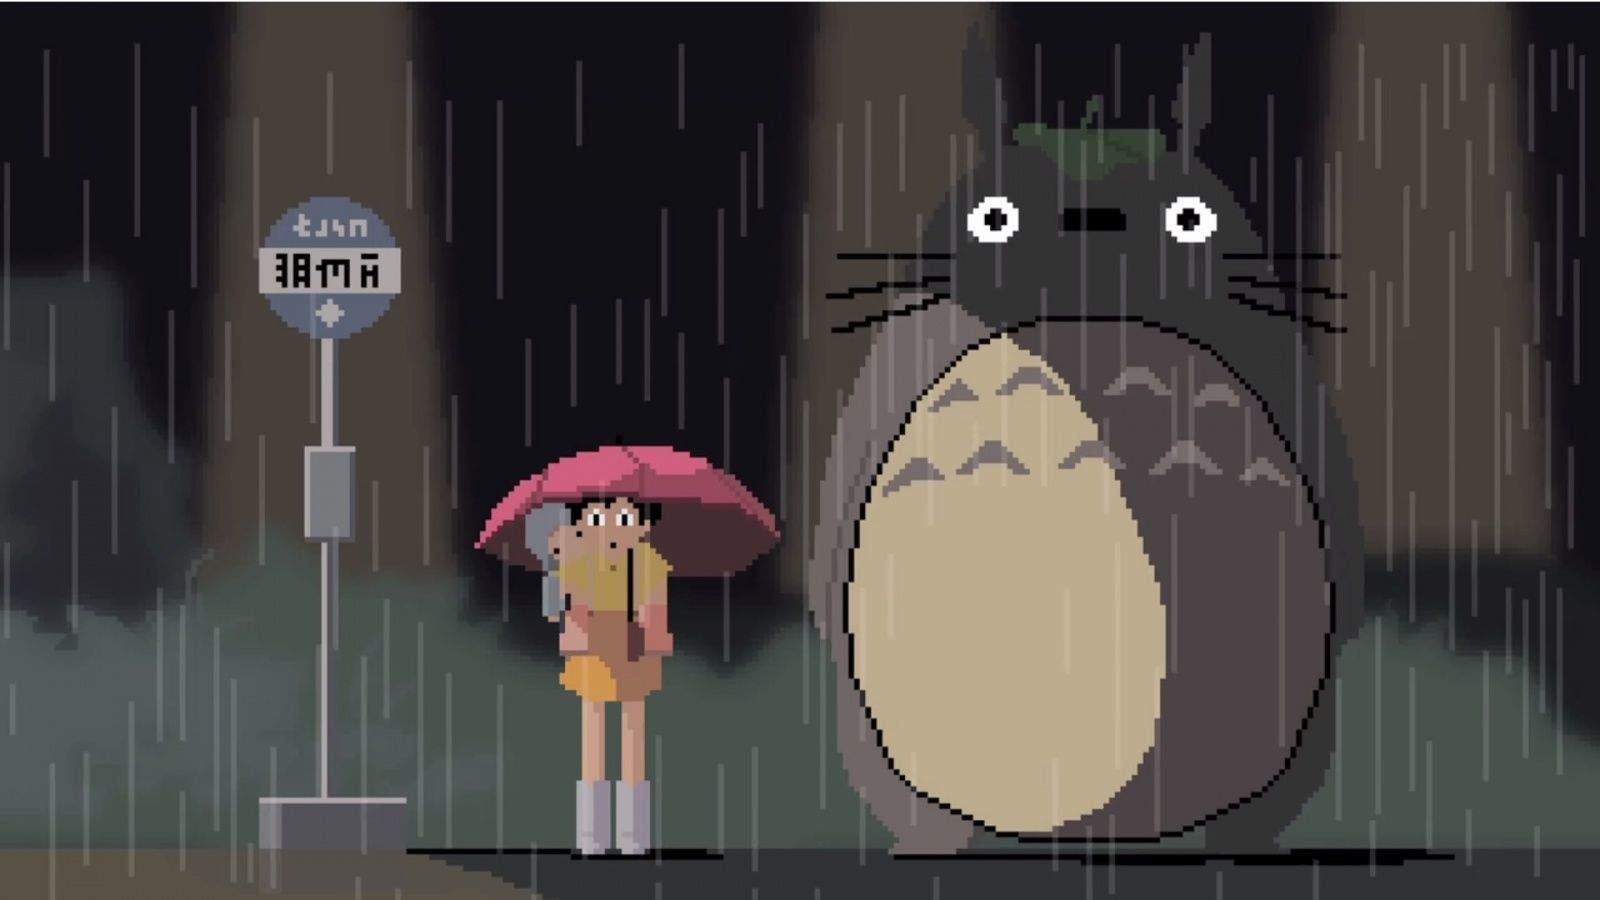 It's rainy out there for neighbors. Screengrab: Pablo Fernandez Eyre